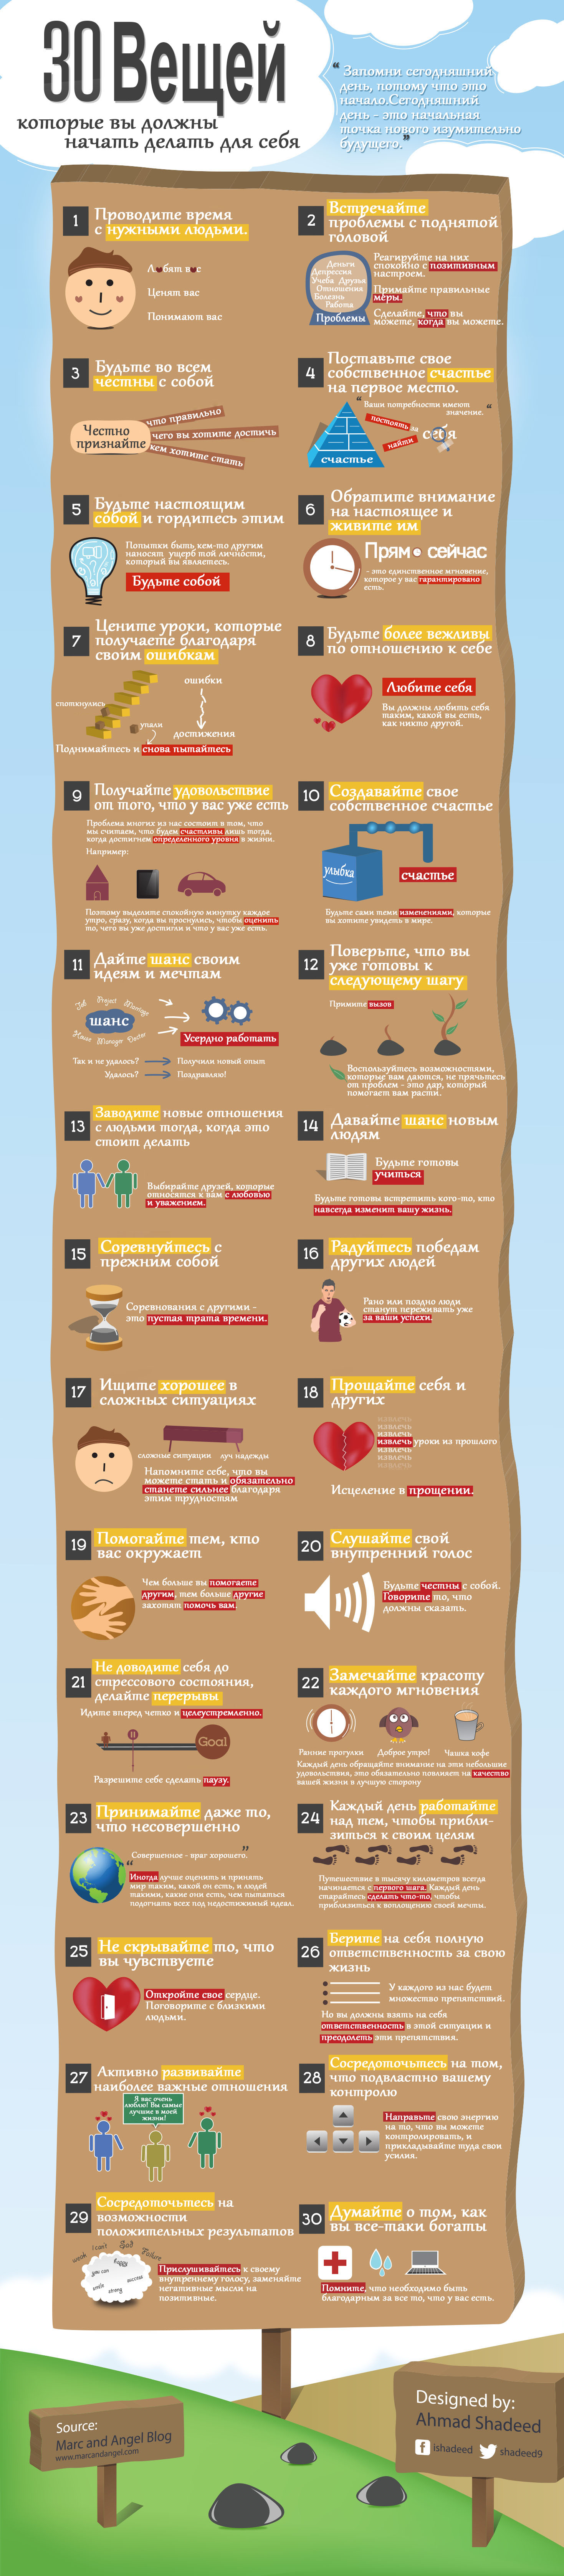 06111757 30 Things to Start Doing For Yourself Infographic 30 шагов к правильной жизни